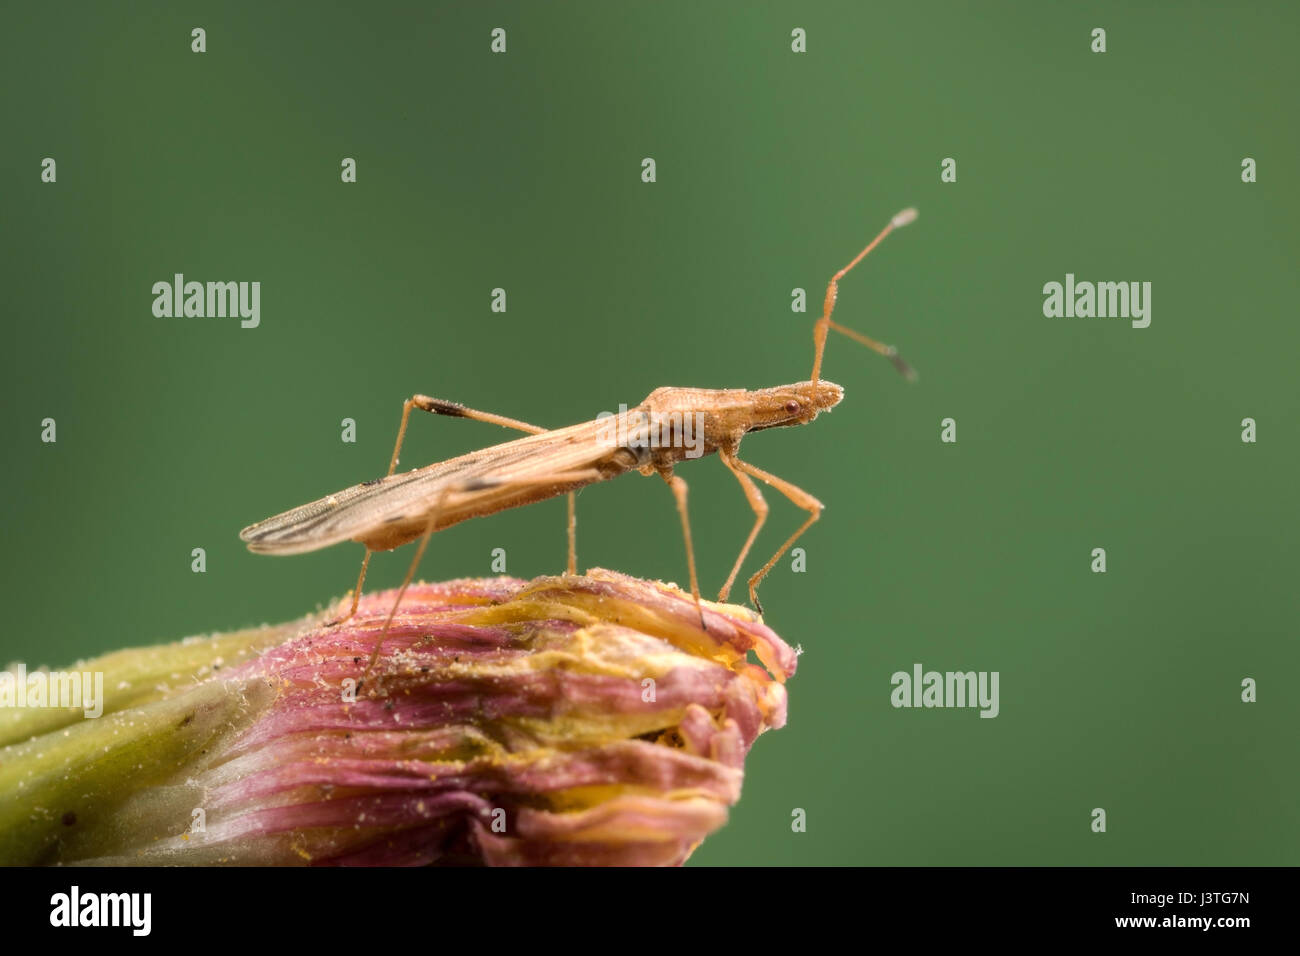 Tiny elongated bodied beetle - Stock Image